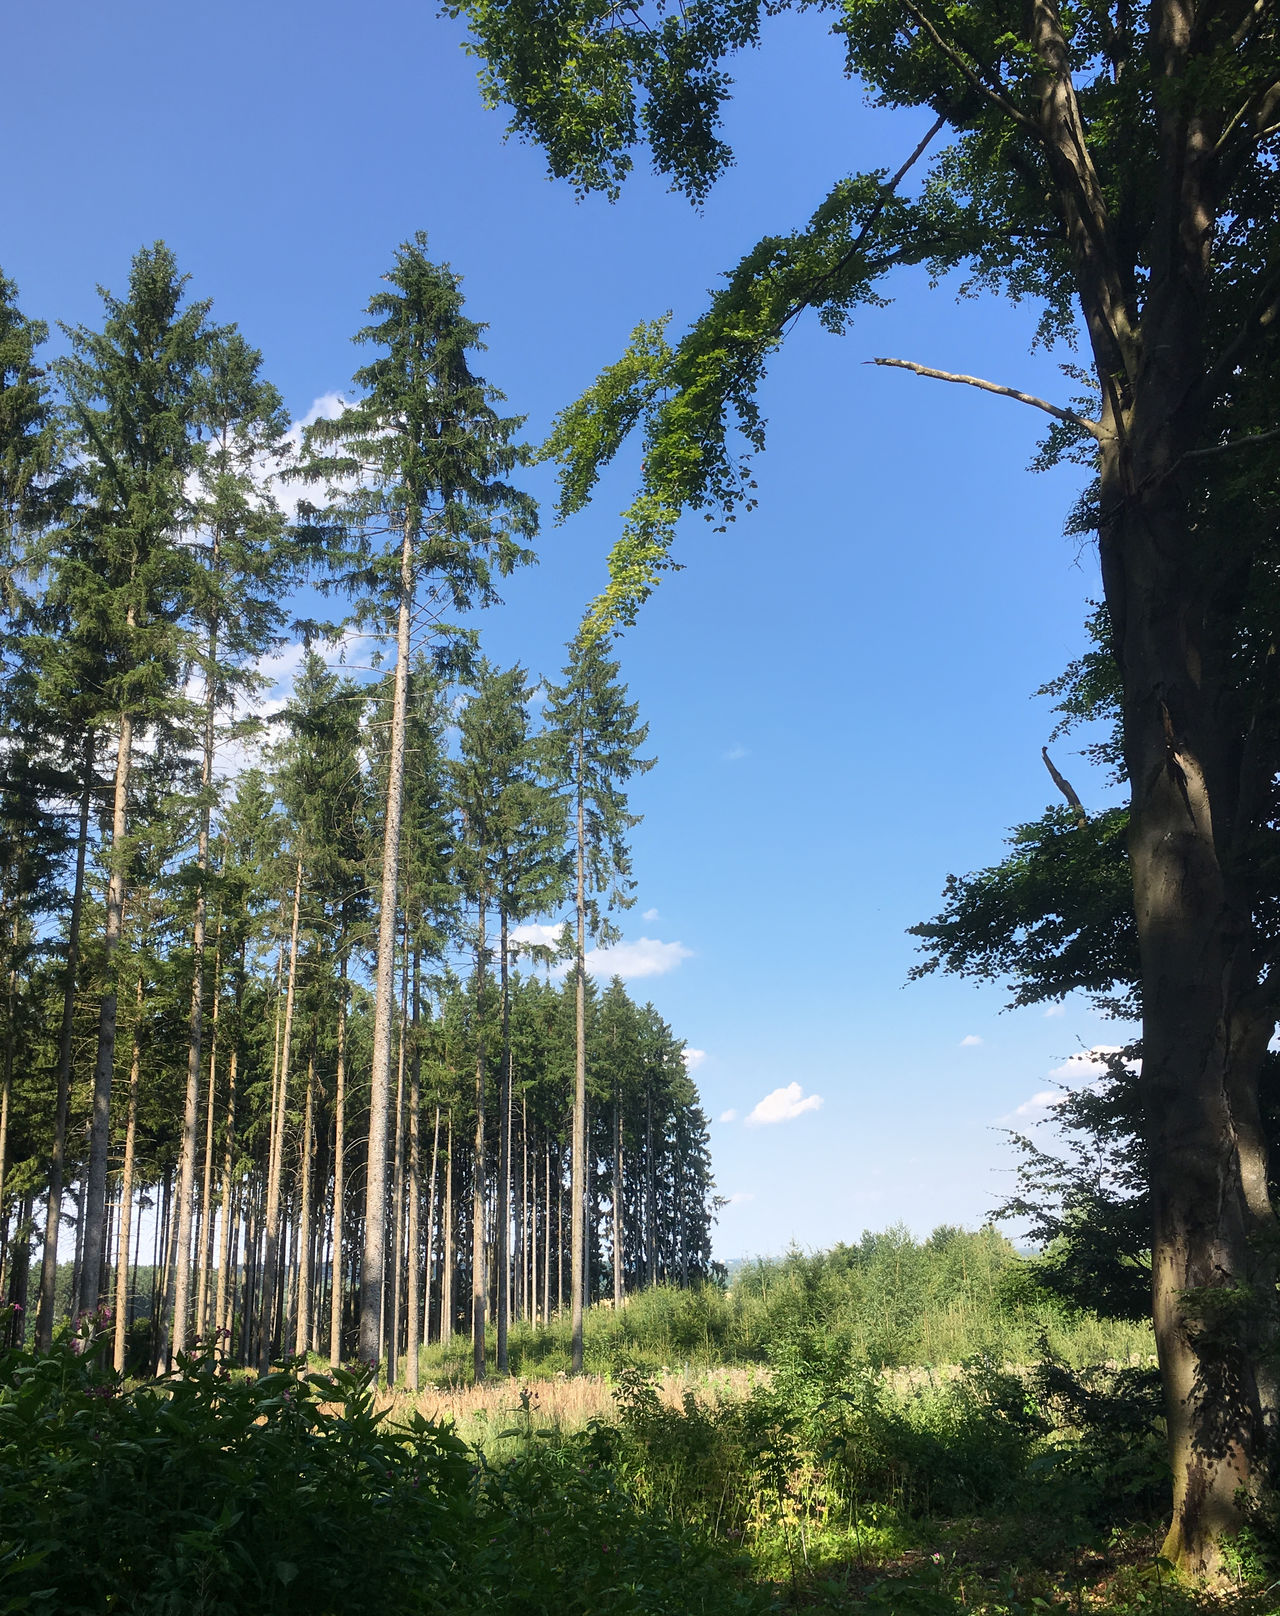 Waldaussicht Beauty In Nature Clear Sky Day Forest Grass Growth Landscape Nature No People Outdoors Pine Tree Scenics Sky Tranquil Scene Tranquility Tree Tree Trunk